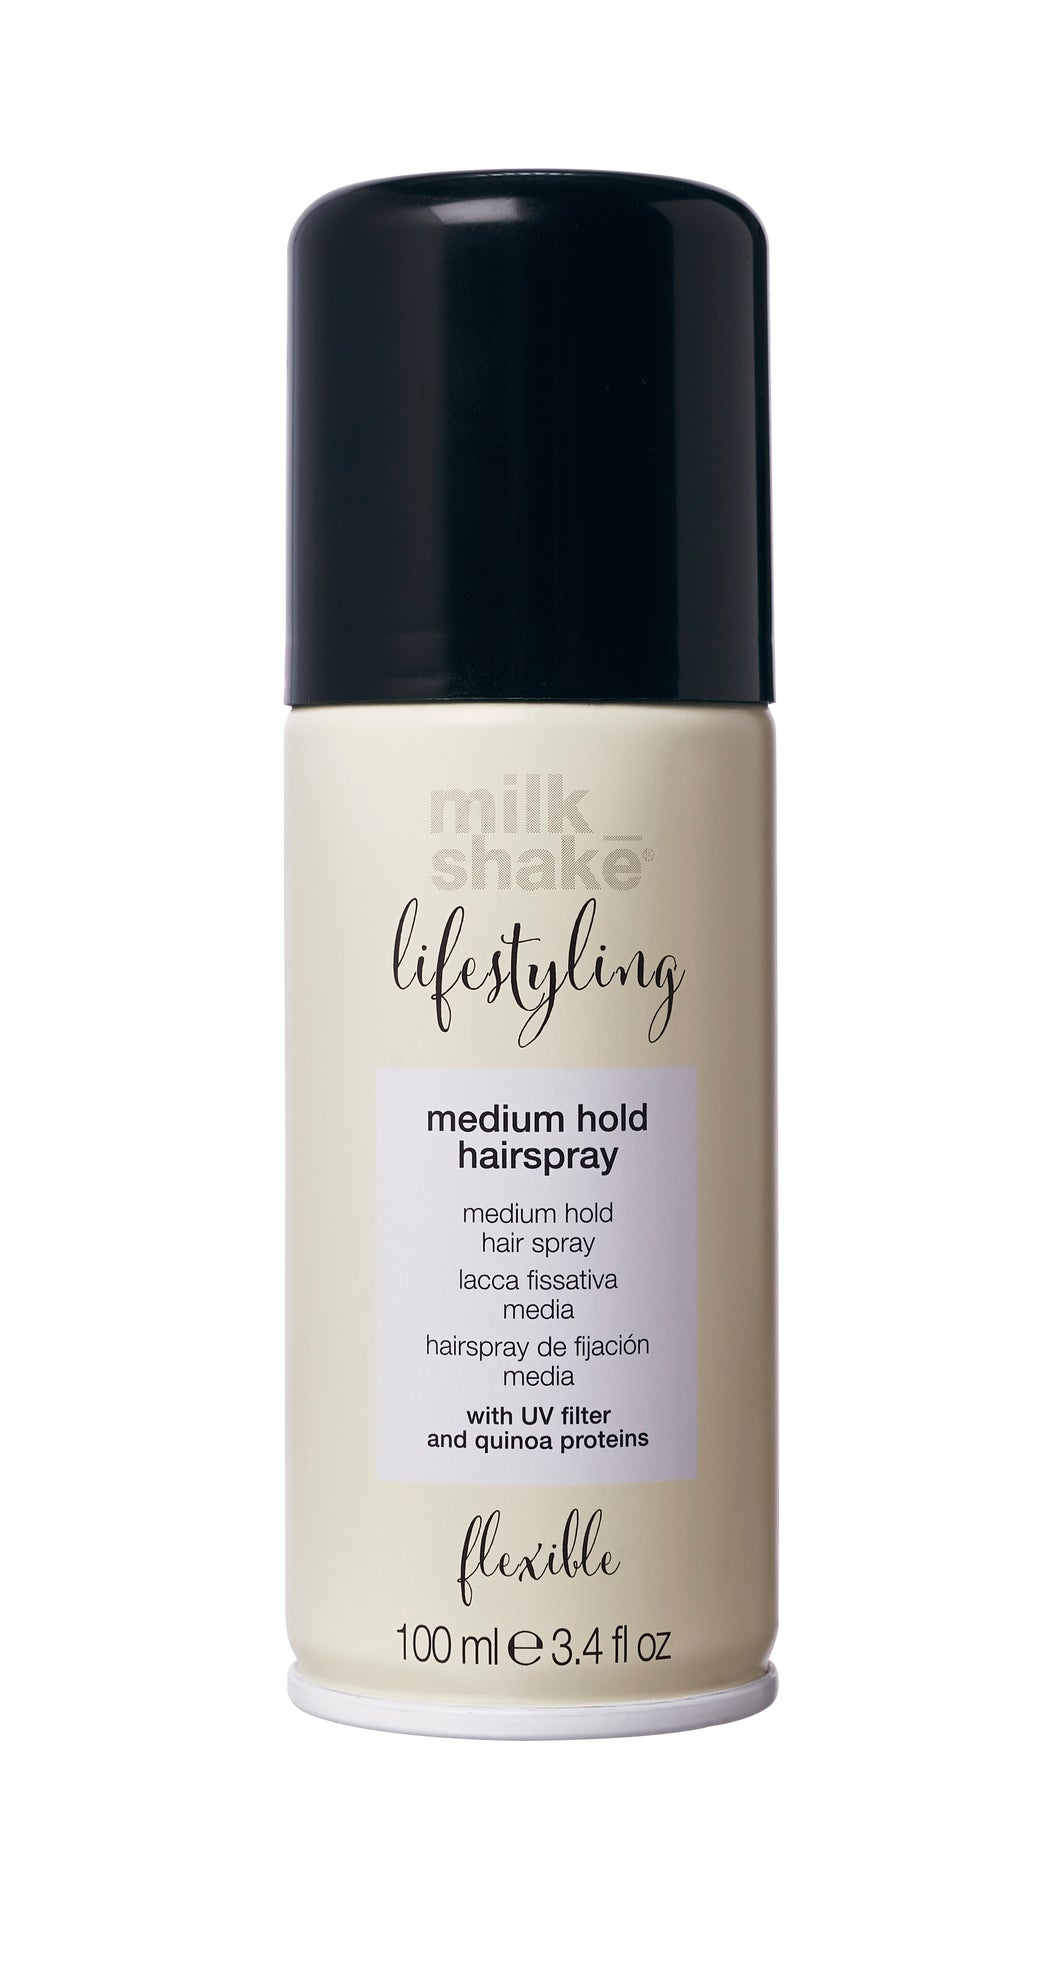 MILK_SHAKE LIFESTYLING MEDIUM HOLD HAIRSPRAY Ferðasprey 100 ML